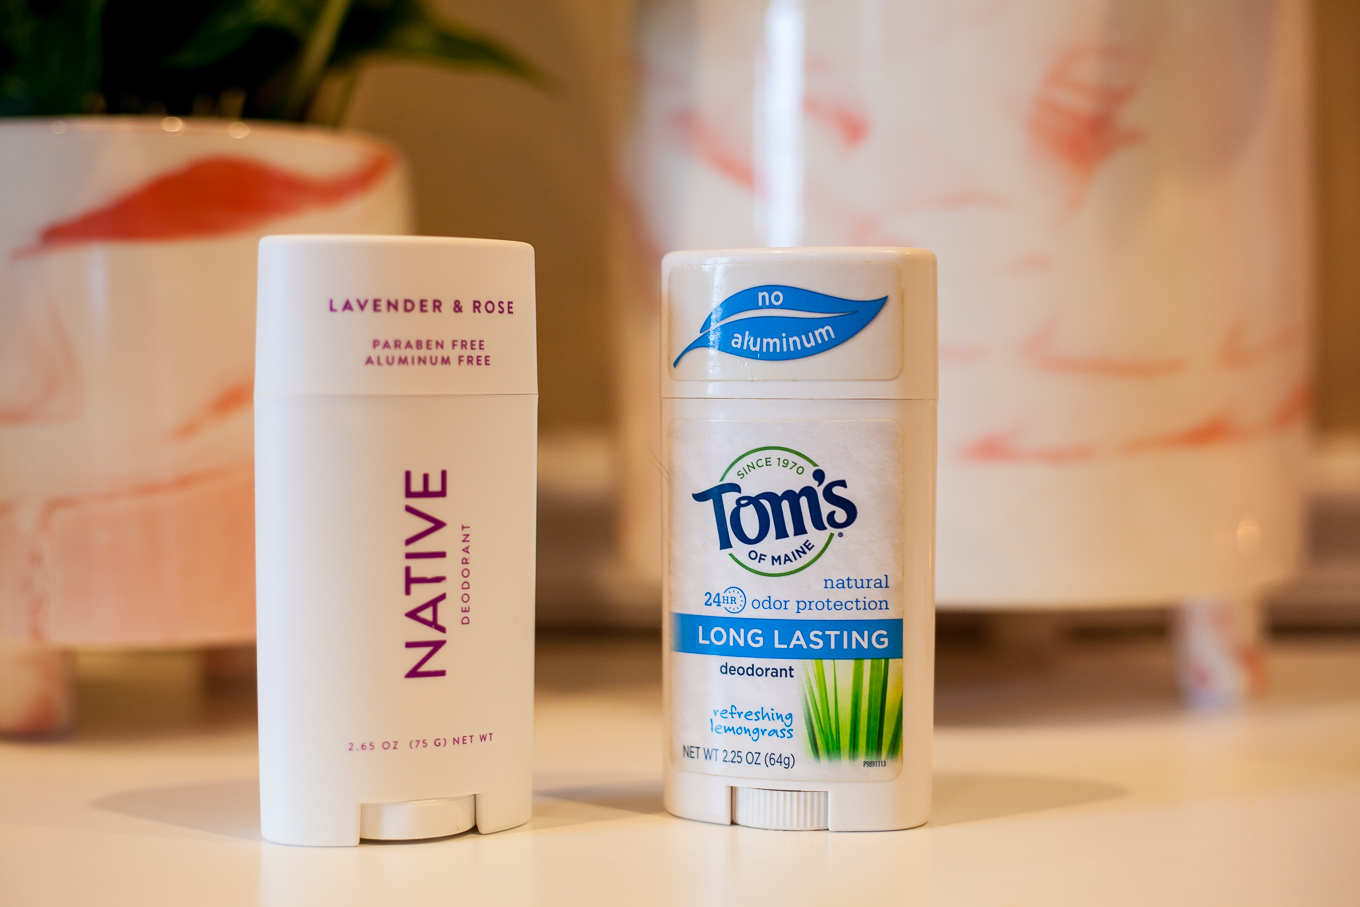 My Natural Deodorant Review by popular Chicago life and style blog, Glass of Glam: image of Native and Tom's natural deodorants.